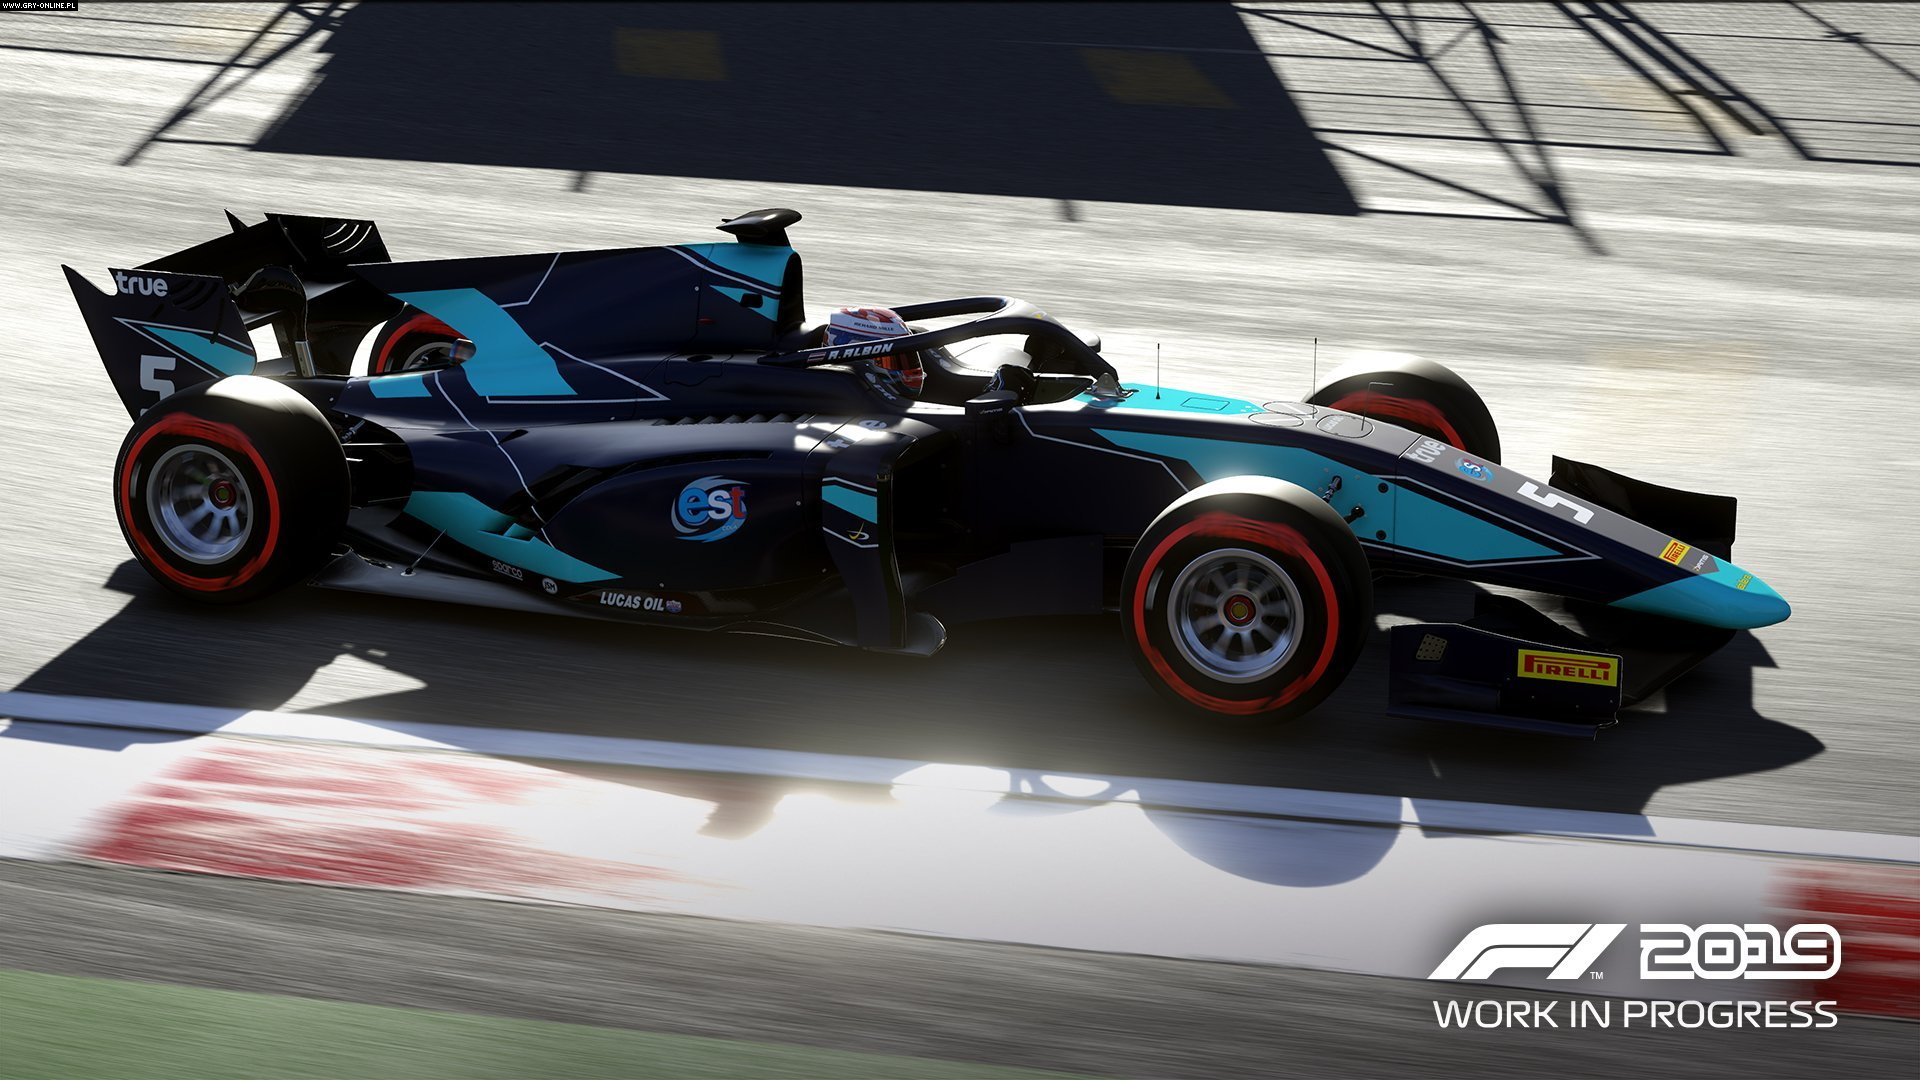 F1 2019 PC, PS4, XONE Games Image 24/62, Codemasters Software